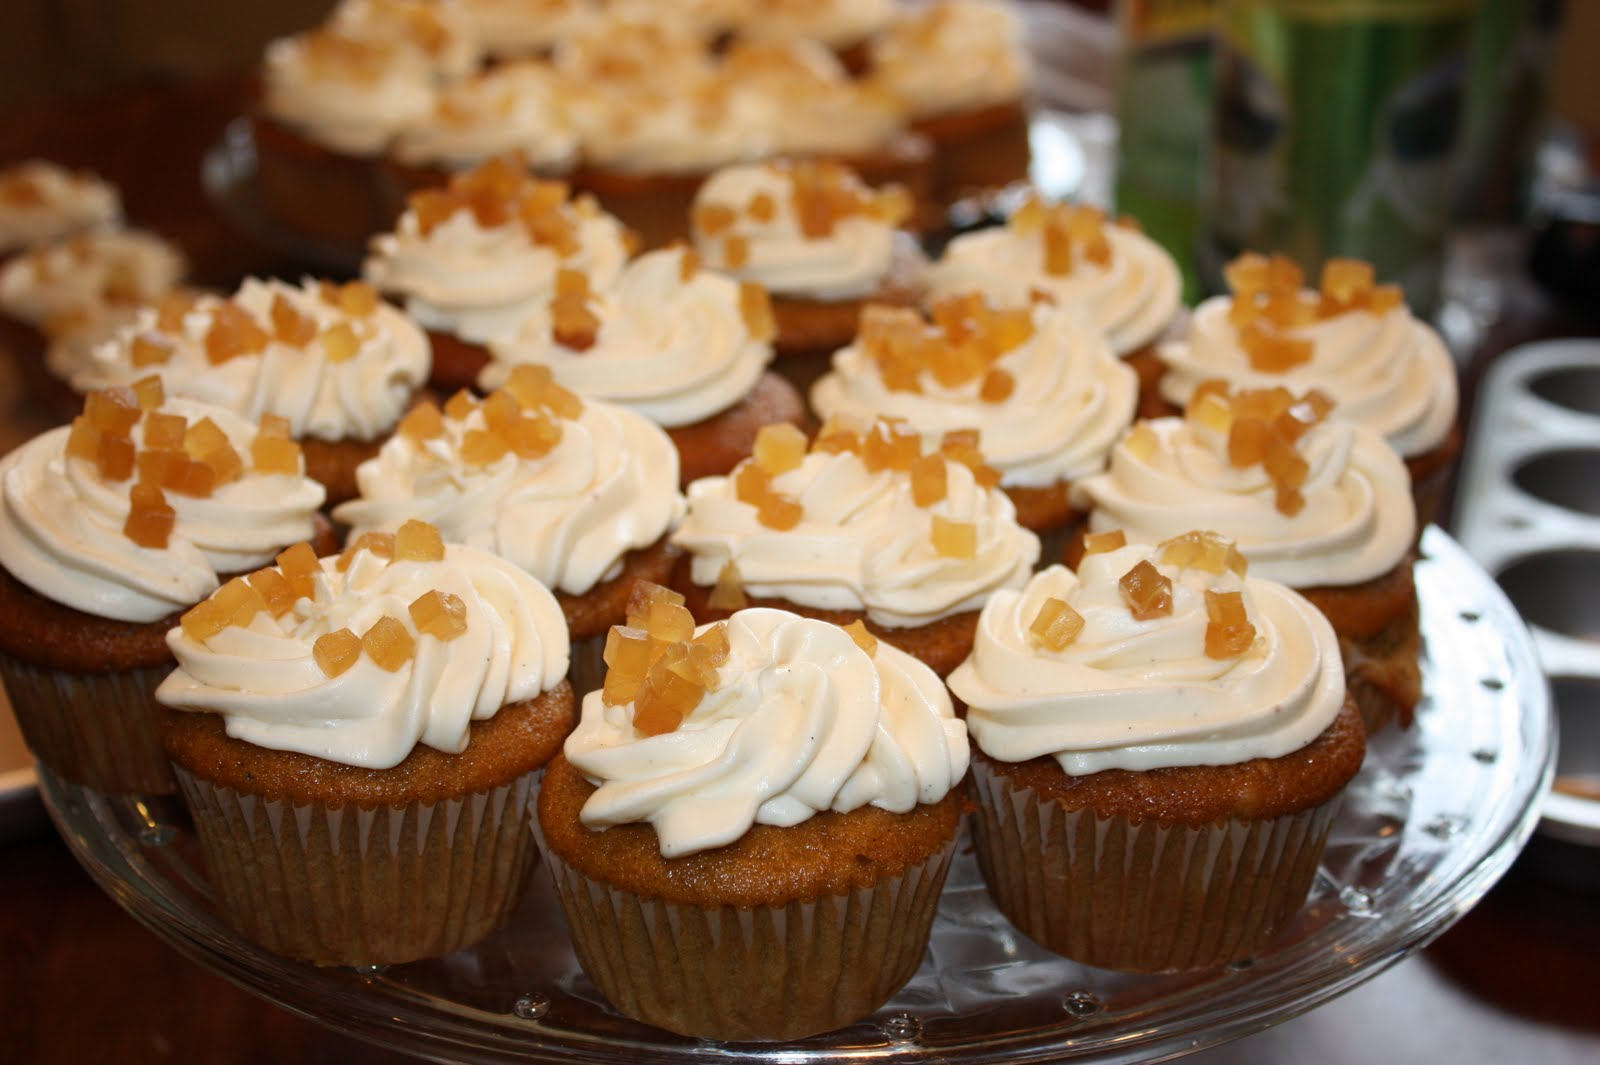 Pumpkin cupcakes with cream cheese frosting and ginger jelly.